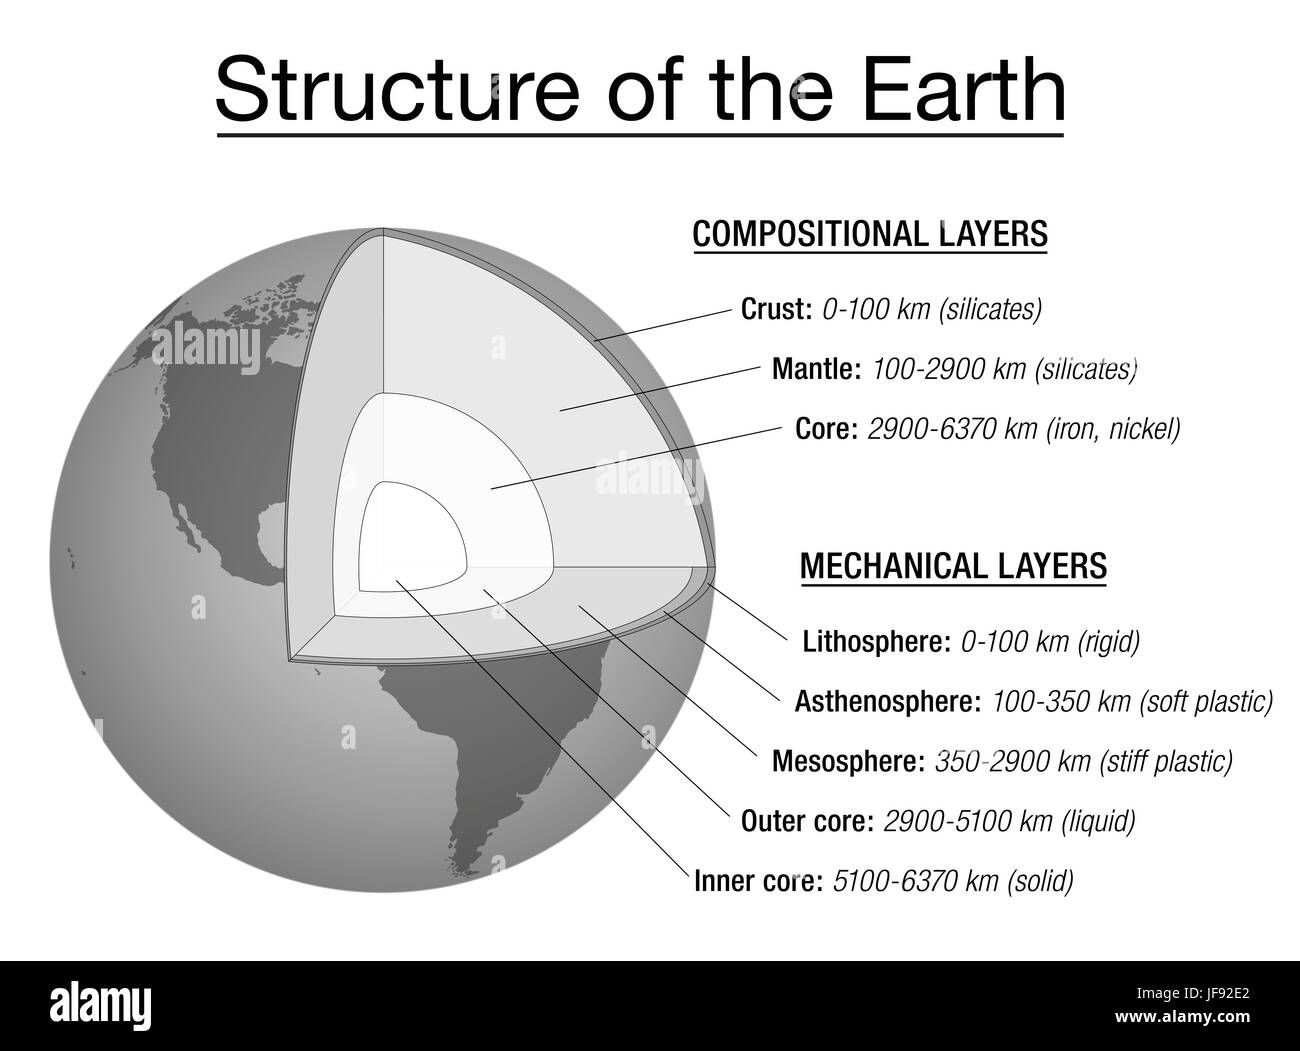 Structure of the earth explanation chart - cross section and layers of the earths interior, description, depth in - Stock Image